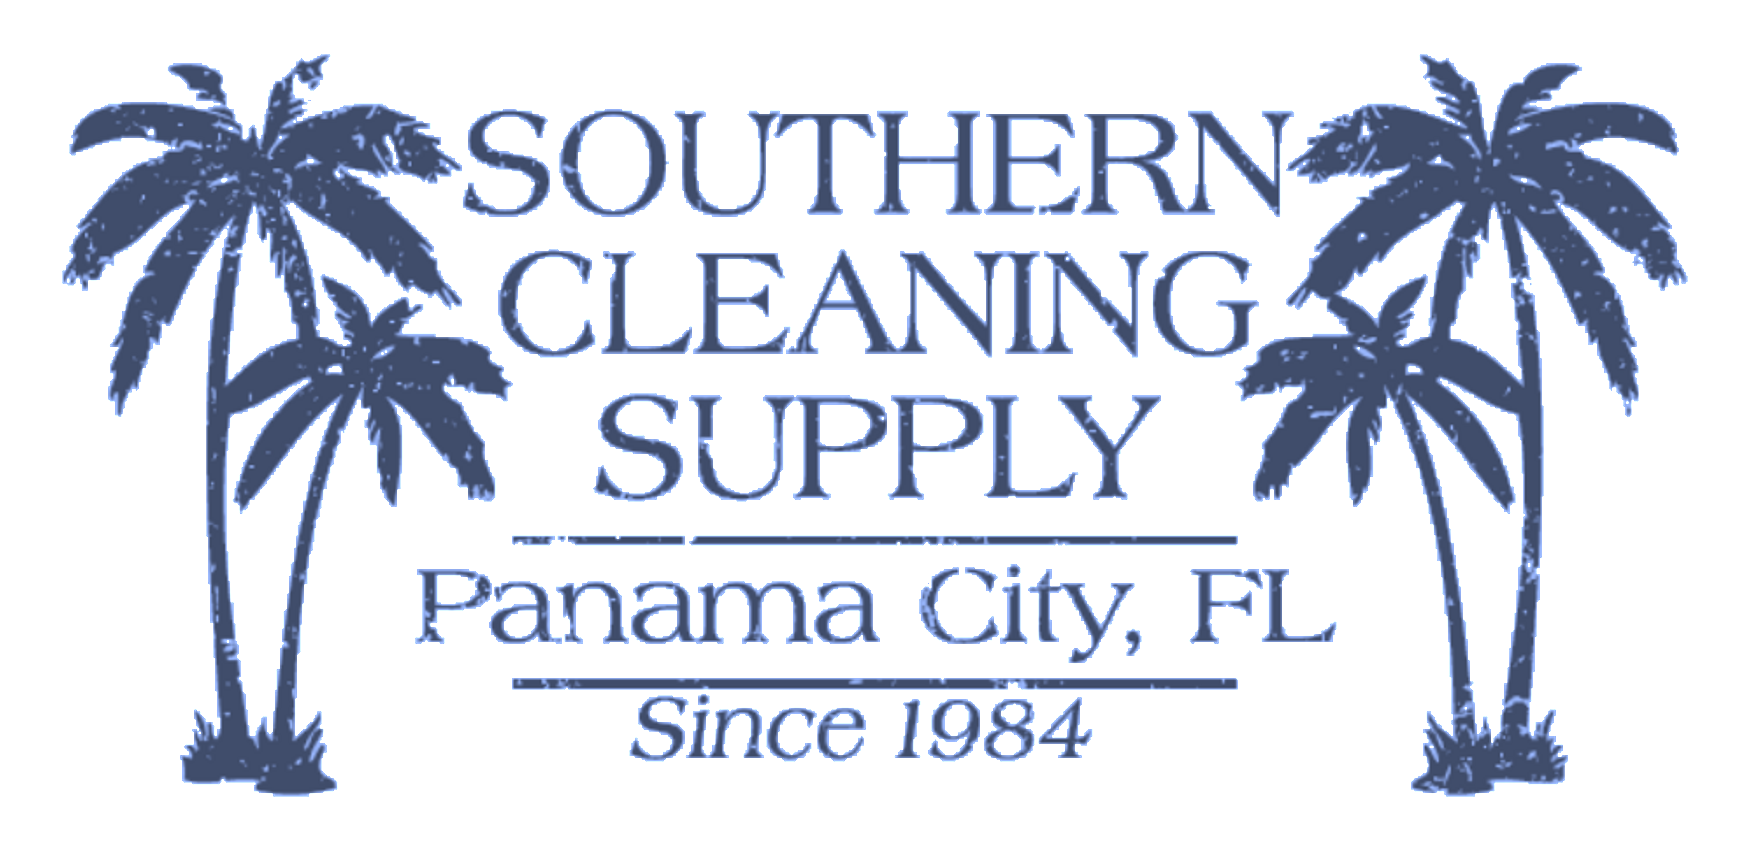 janitorial supply company marketing case study